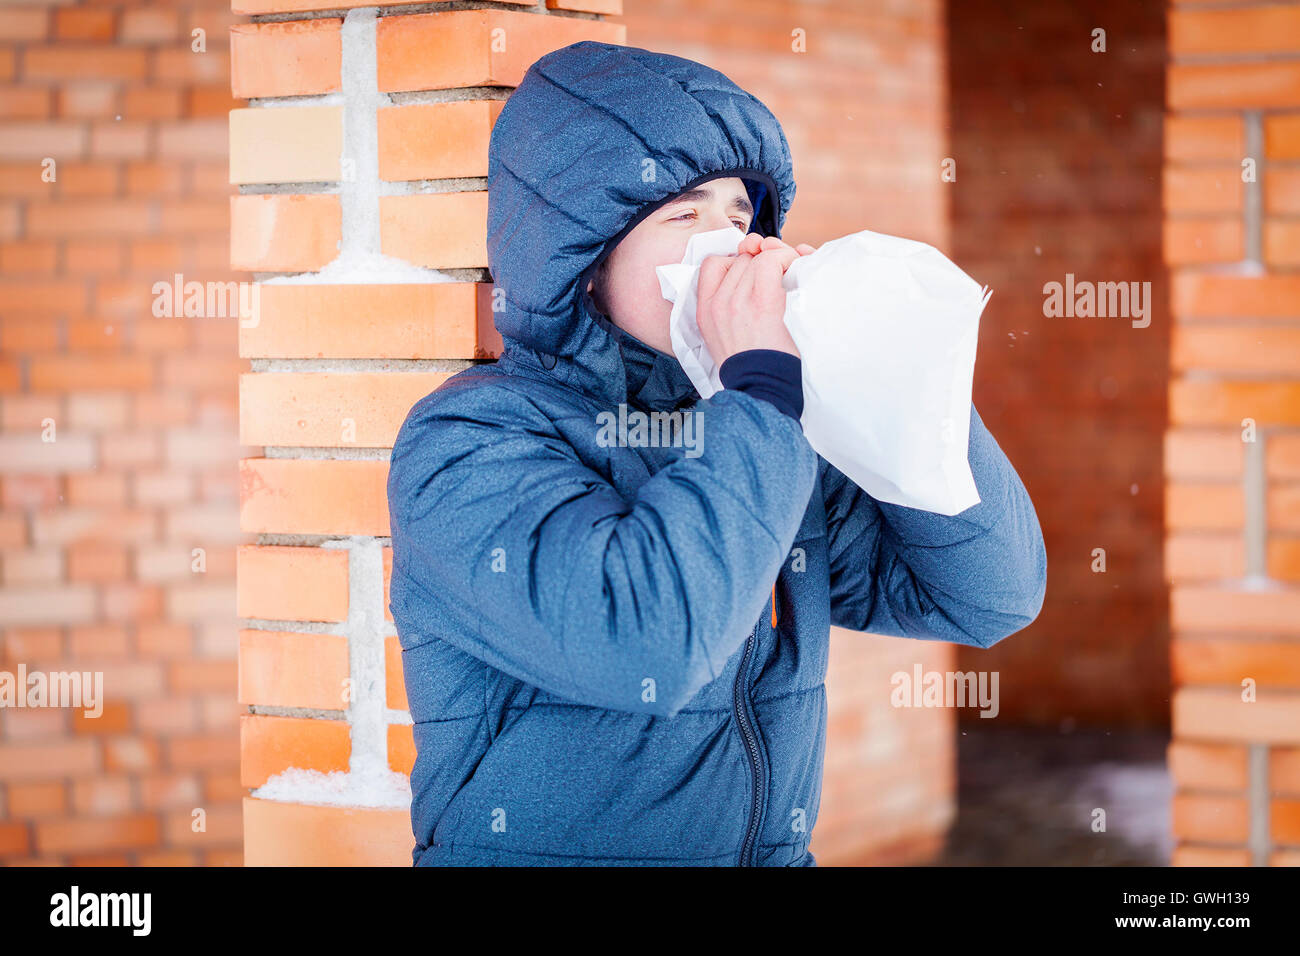 Stressful Teenager breathe into paper bag near building in winter - Stock Image